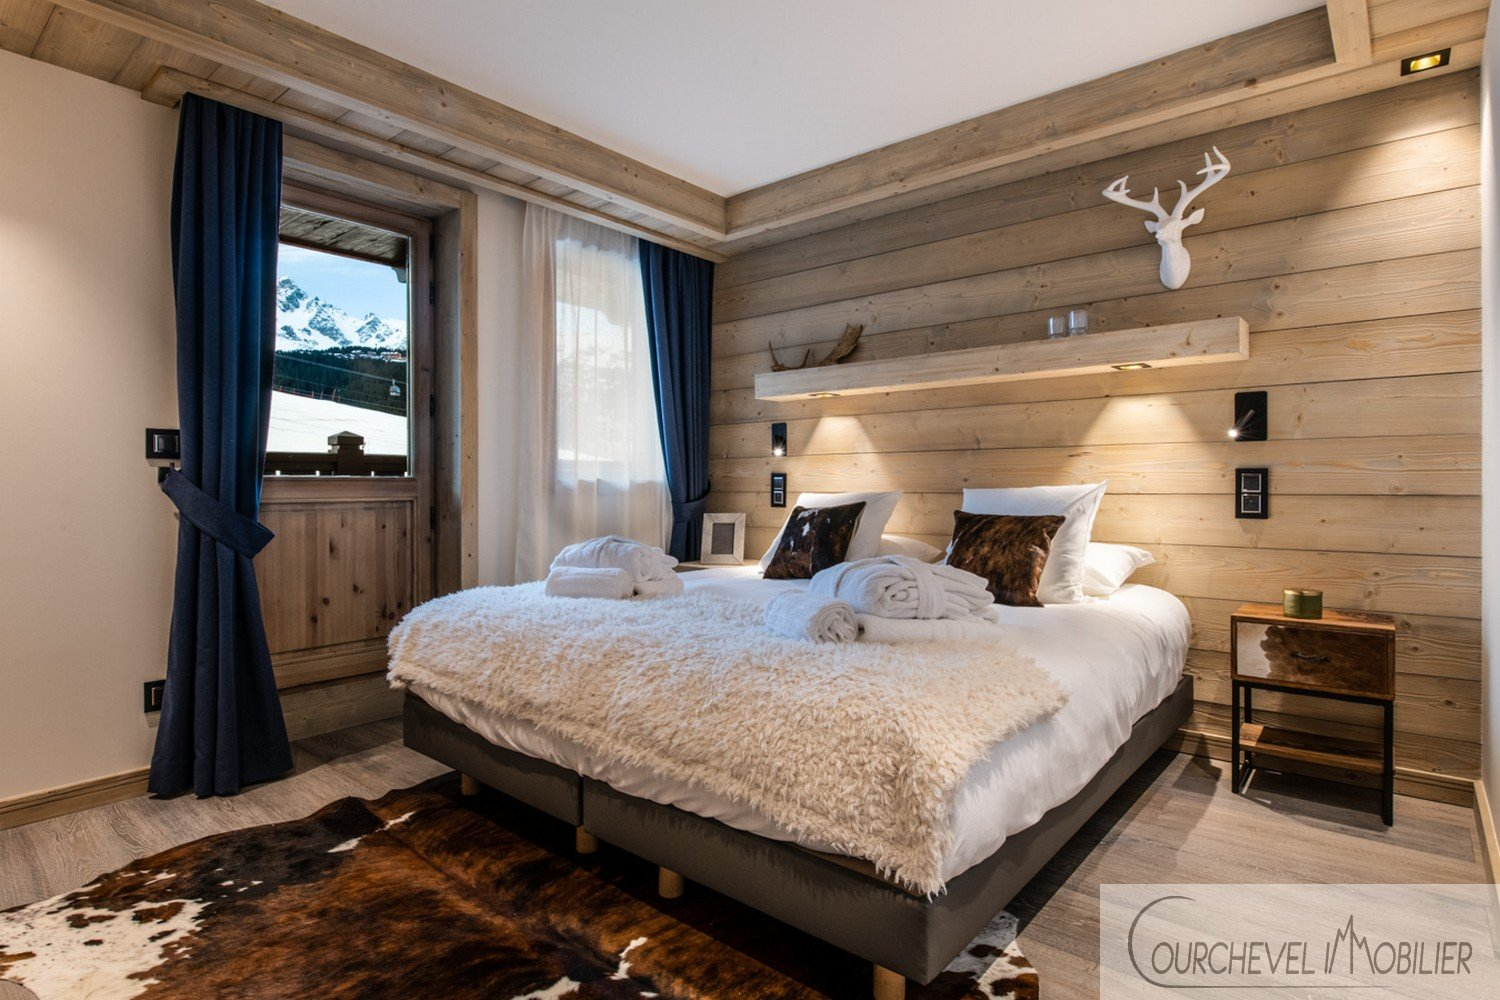 109m² T4 Courchevel